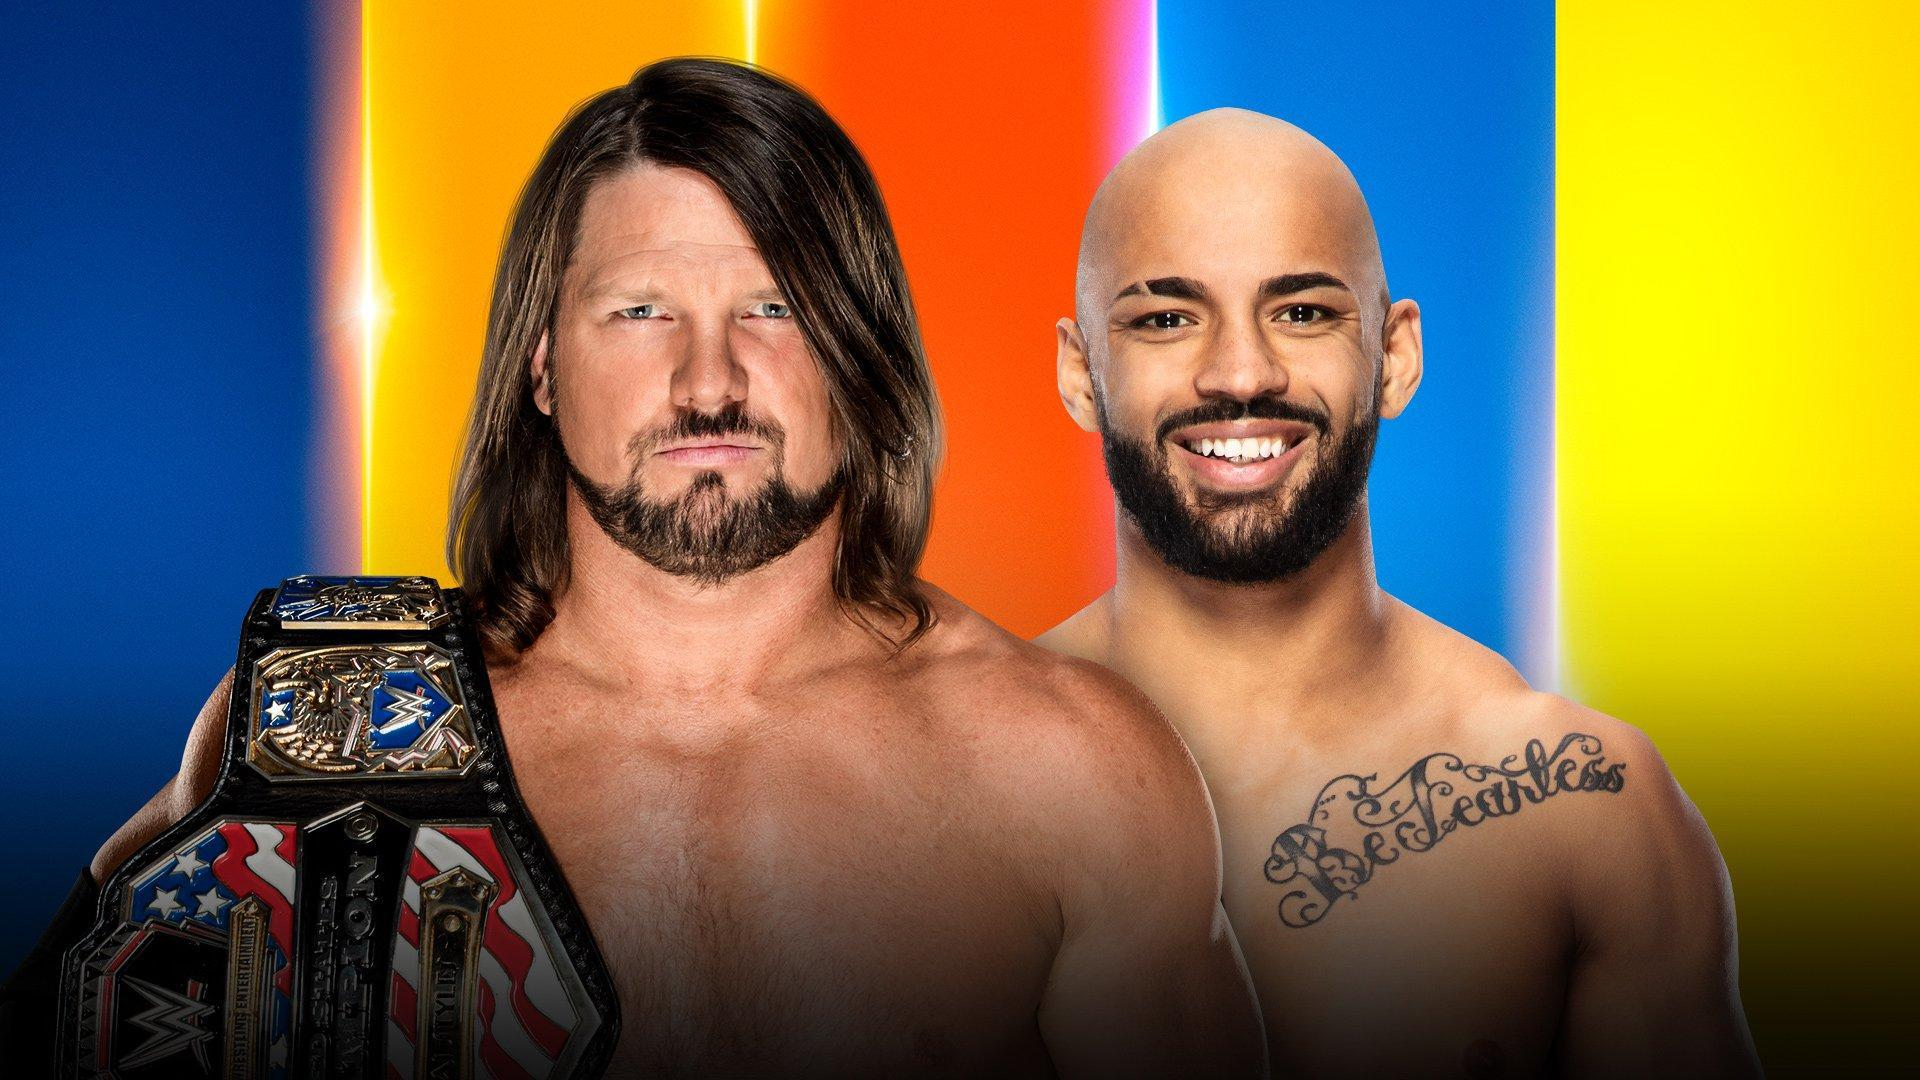 Final Picks and Predictions for Every Match on the WWE SummerSlam